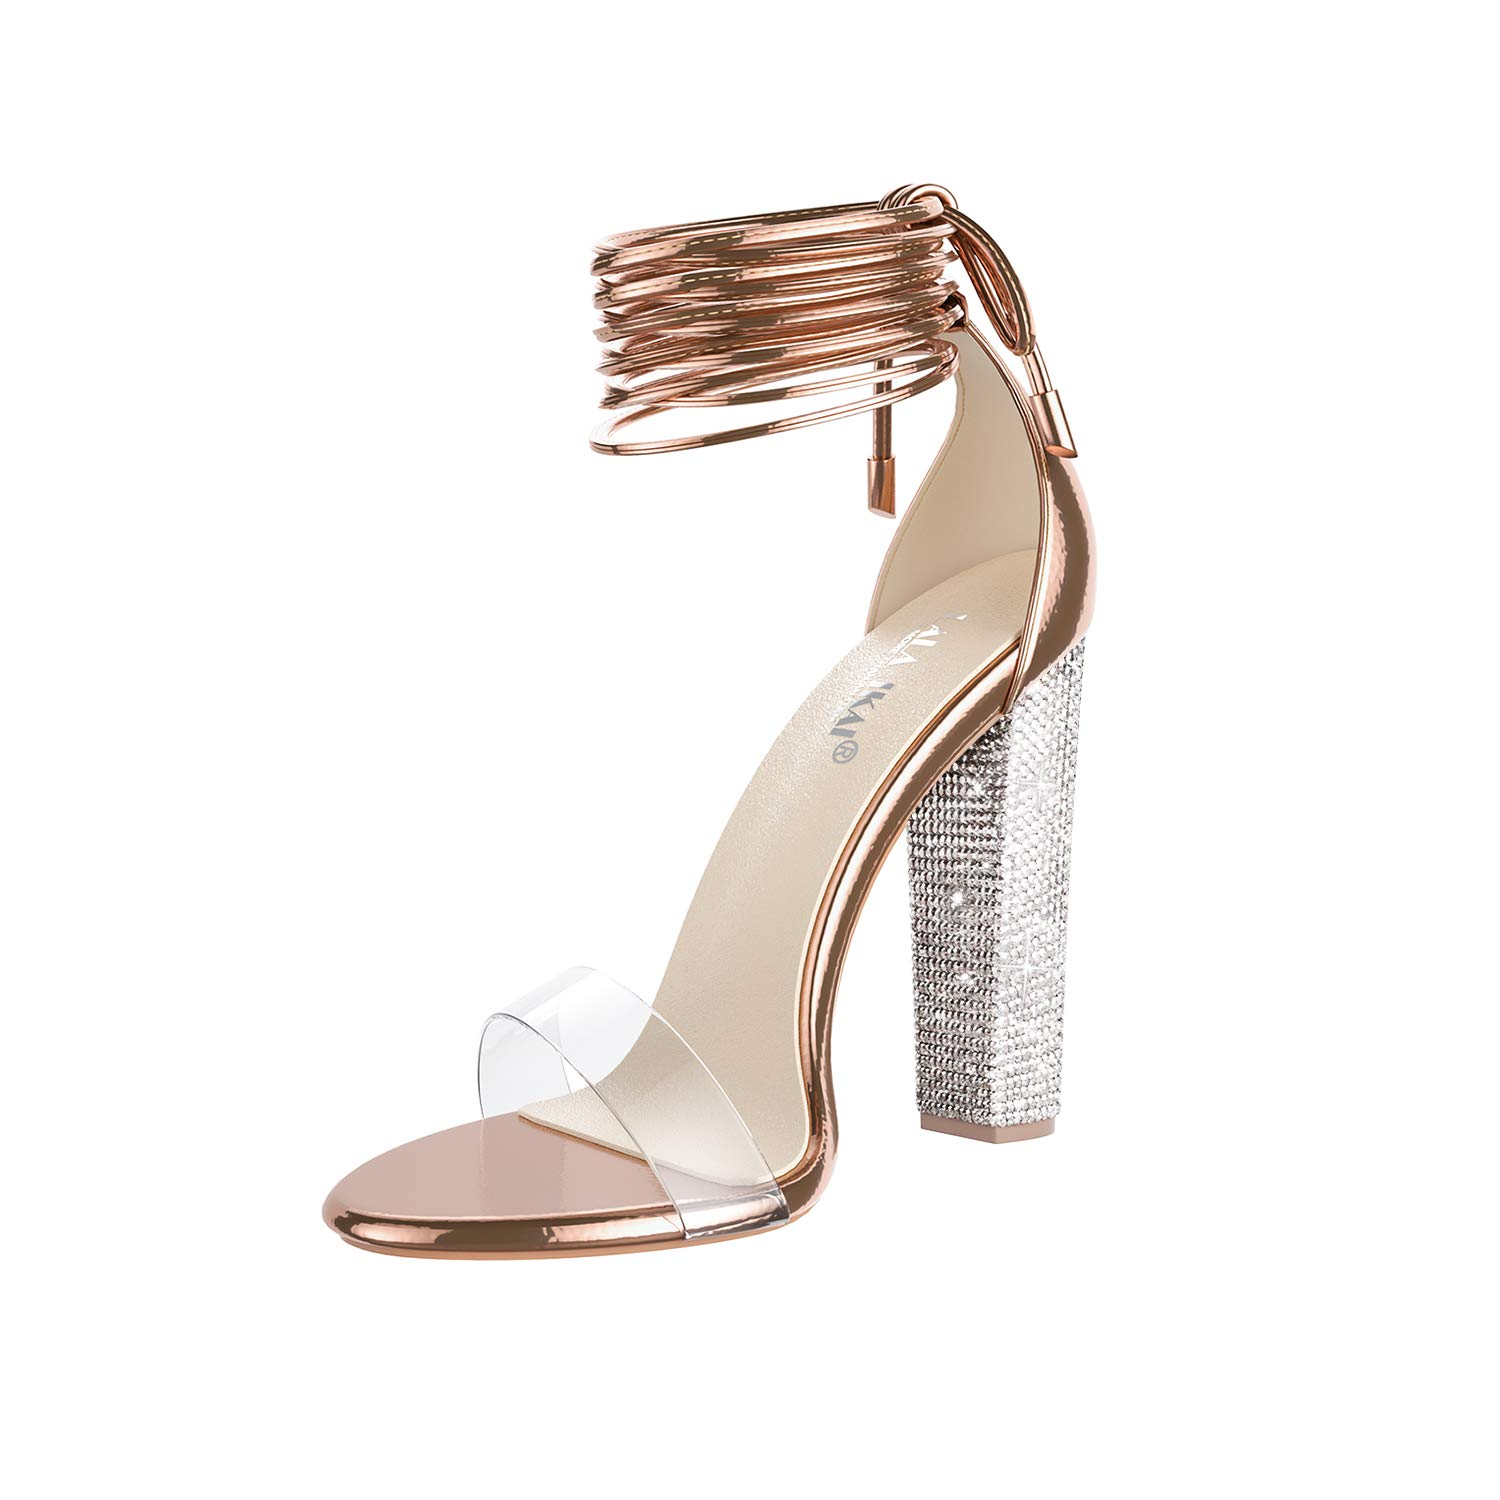 a1be35d7328 LALA IKAI Women's Gold High Heels Sandals with Rhinestone Ankle Strappy  Clear Chunky Heels Dress Party Pumps Shoes